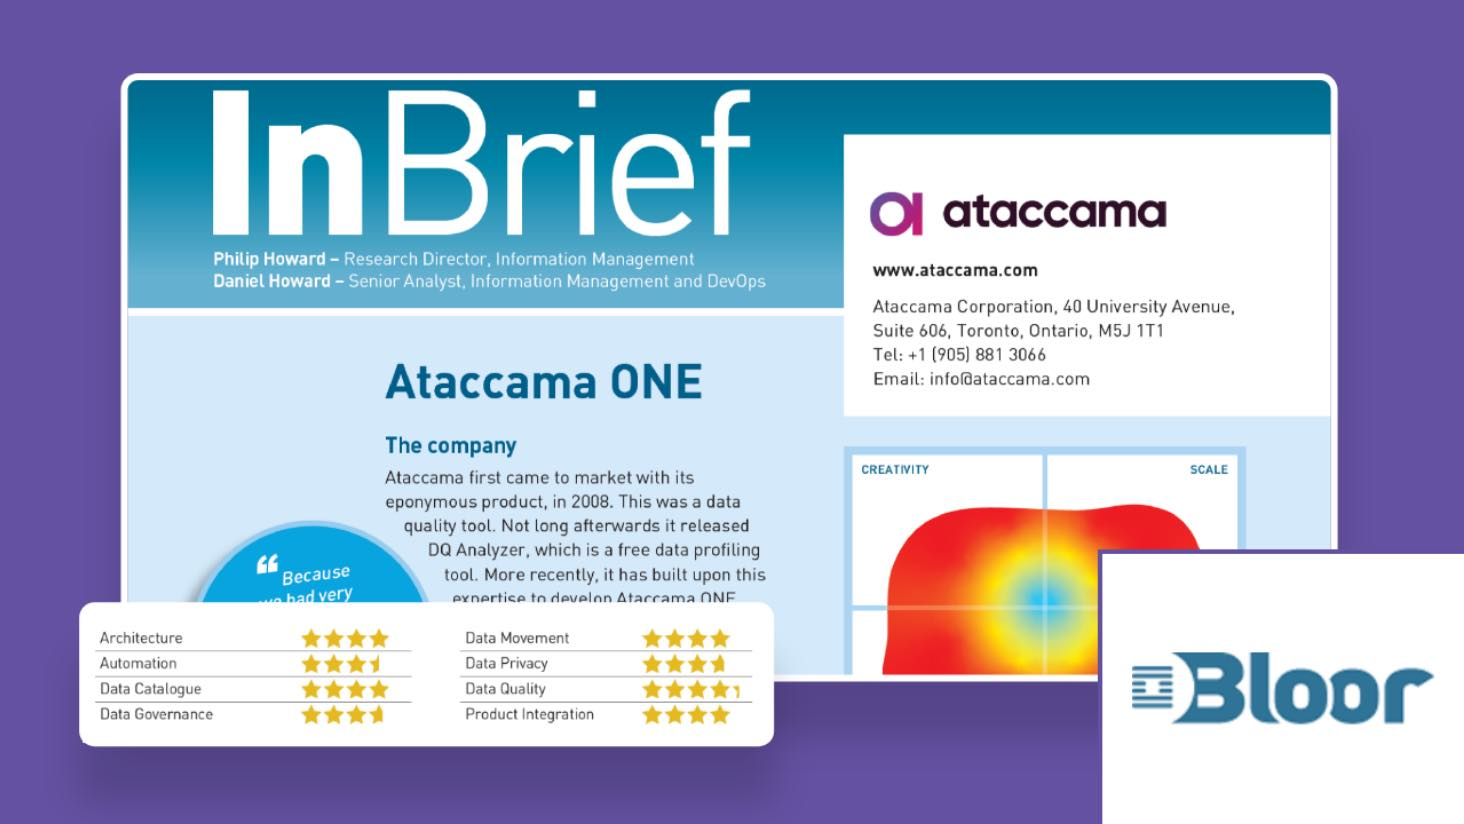 Bloor Research Ataccama ONE Product Evaluation